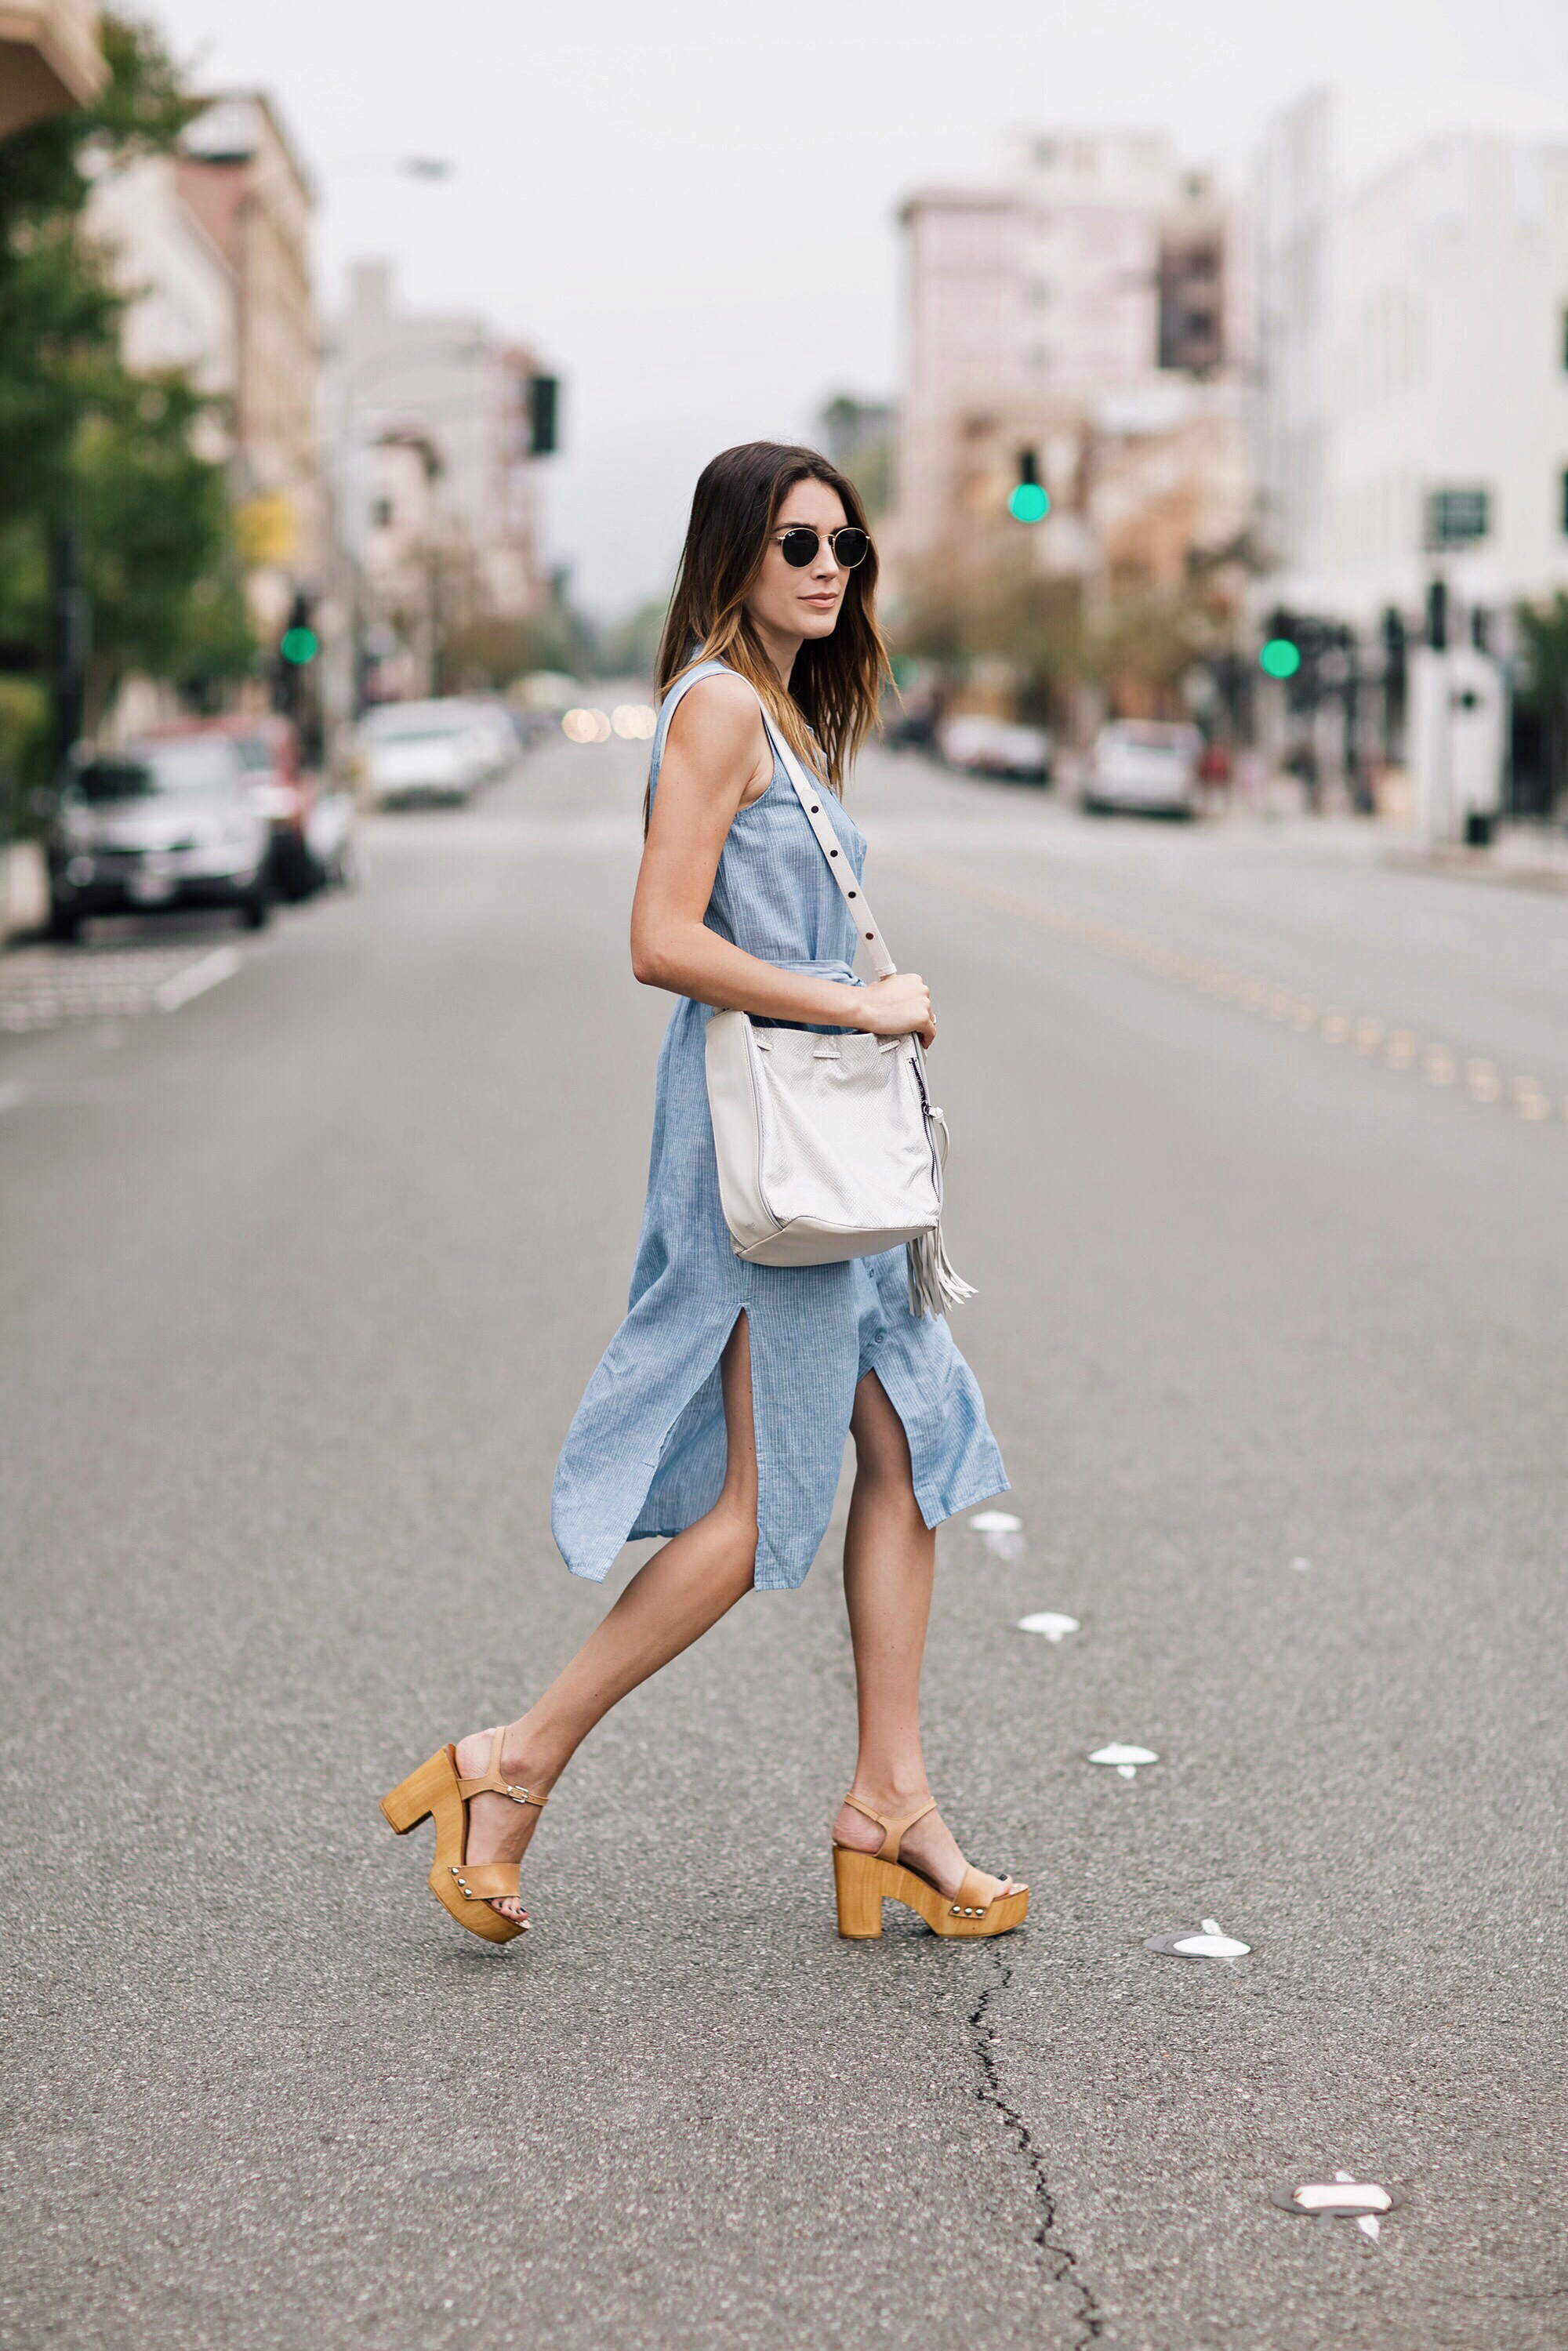 It's summer dress season! This super cute pastel blue piece with slit detailing from Sanctuary Clothing is the perfect choice for a warm summer's day. Brittany Xavier wears this look with chunky platforms, the ultimate match! Dress: Sanctuary Clothing, Sandals: Steve Madden, Bag: Botkier.